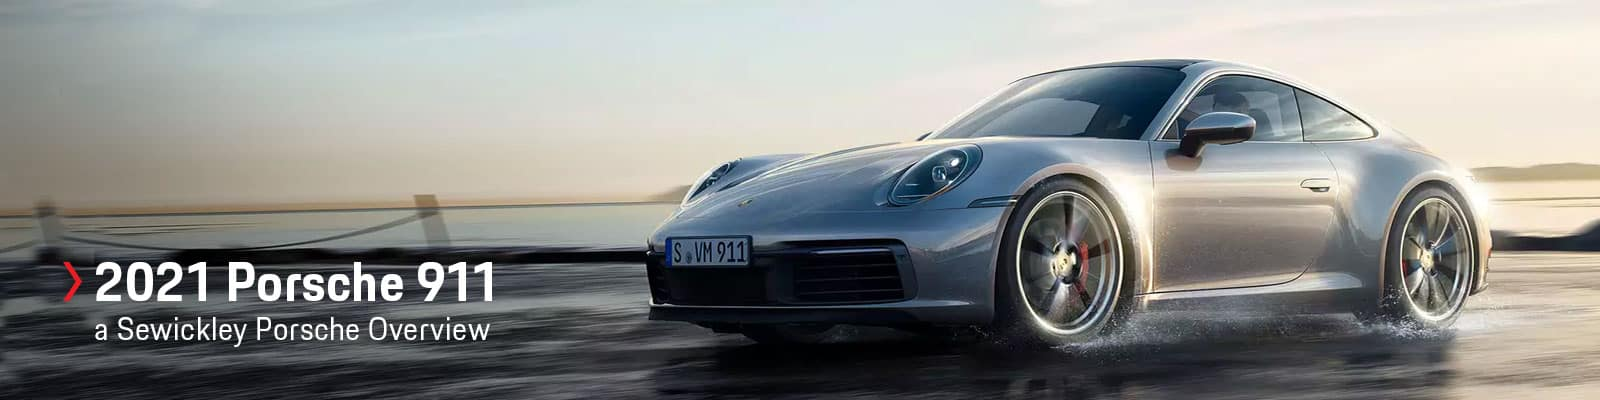 2021 Porsche 911 Model Overview at Sewickley Porsche